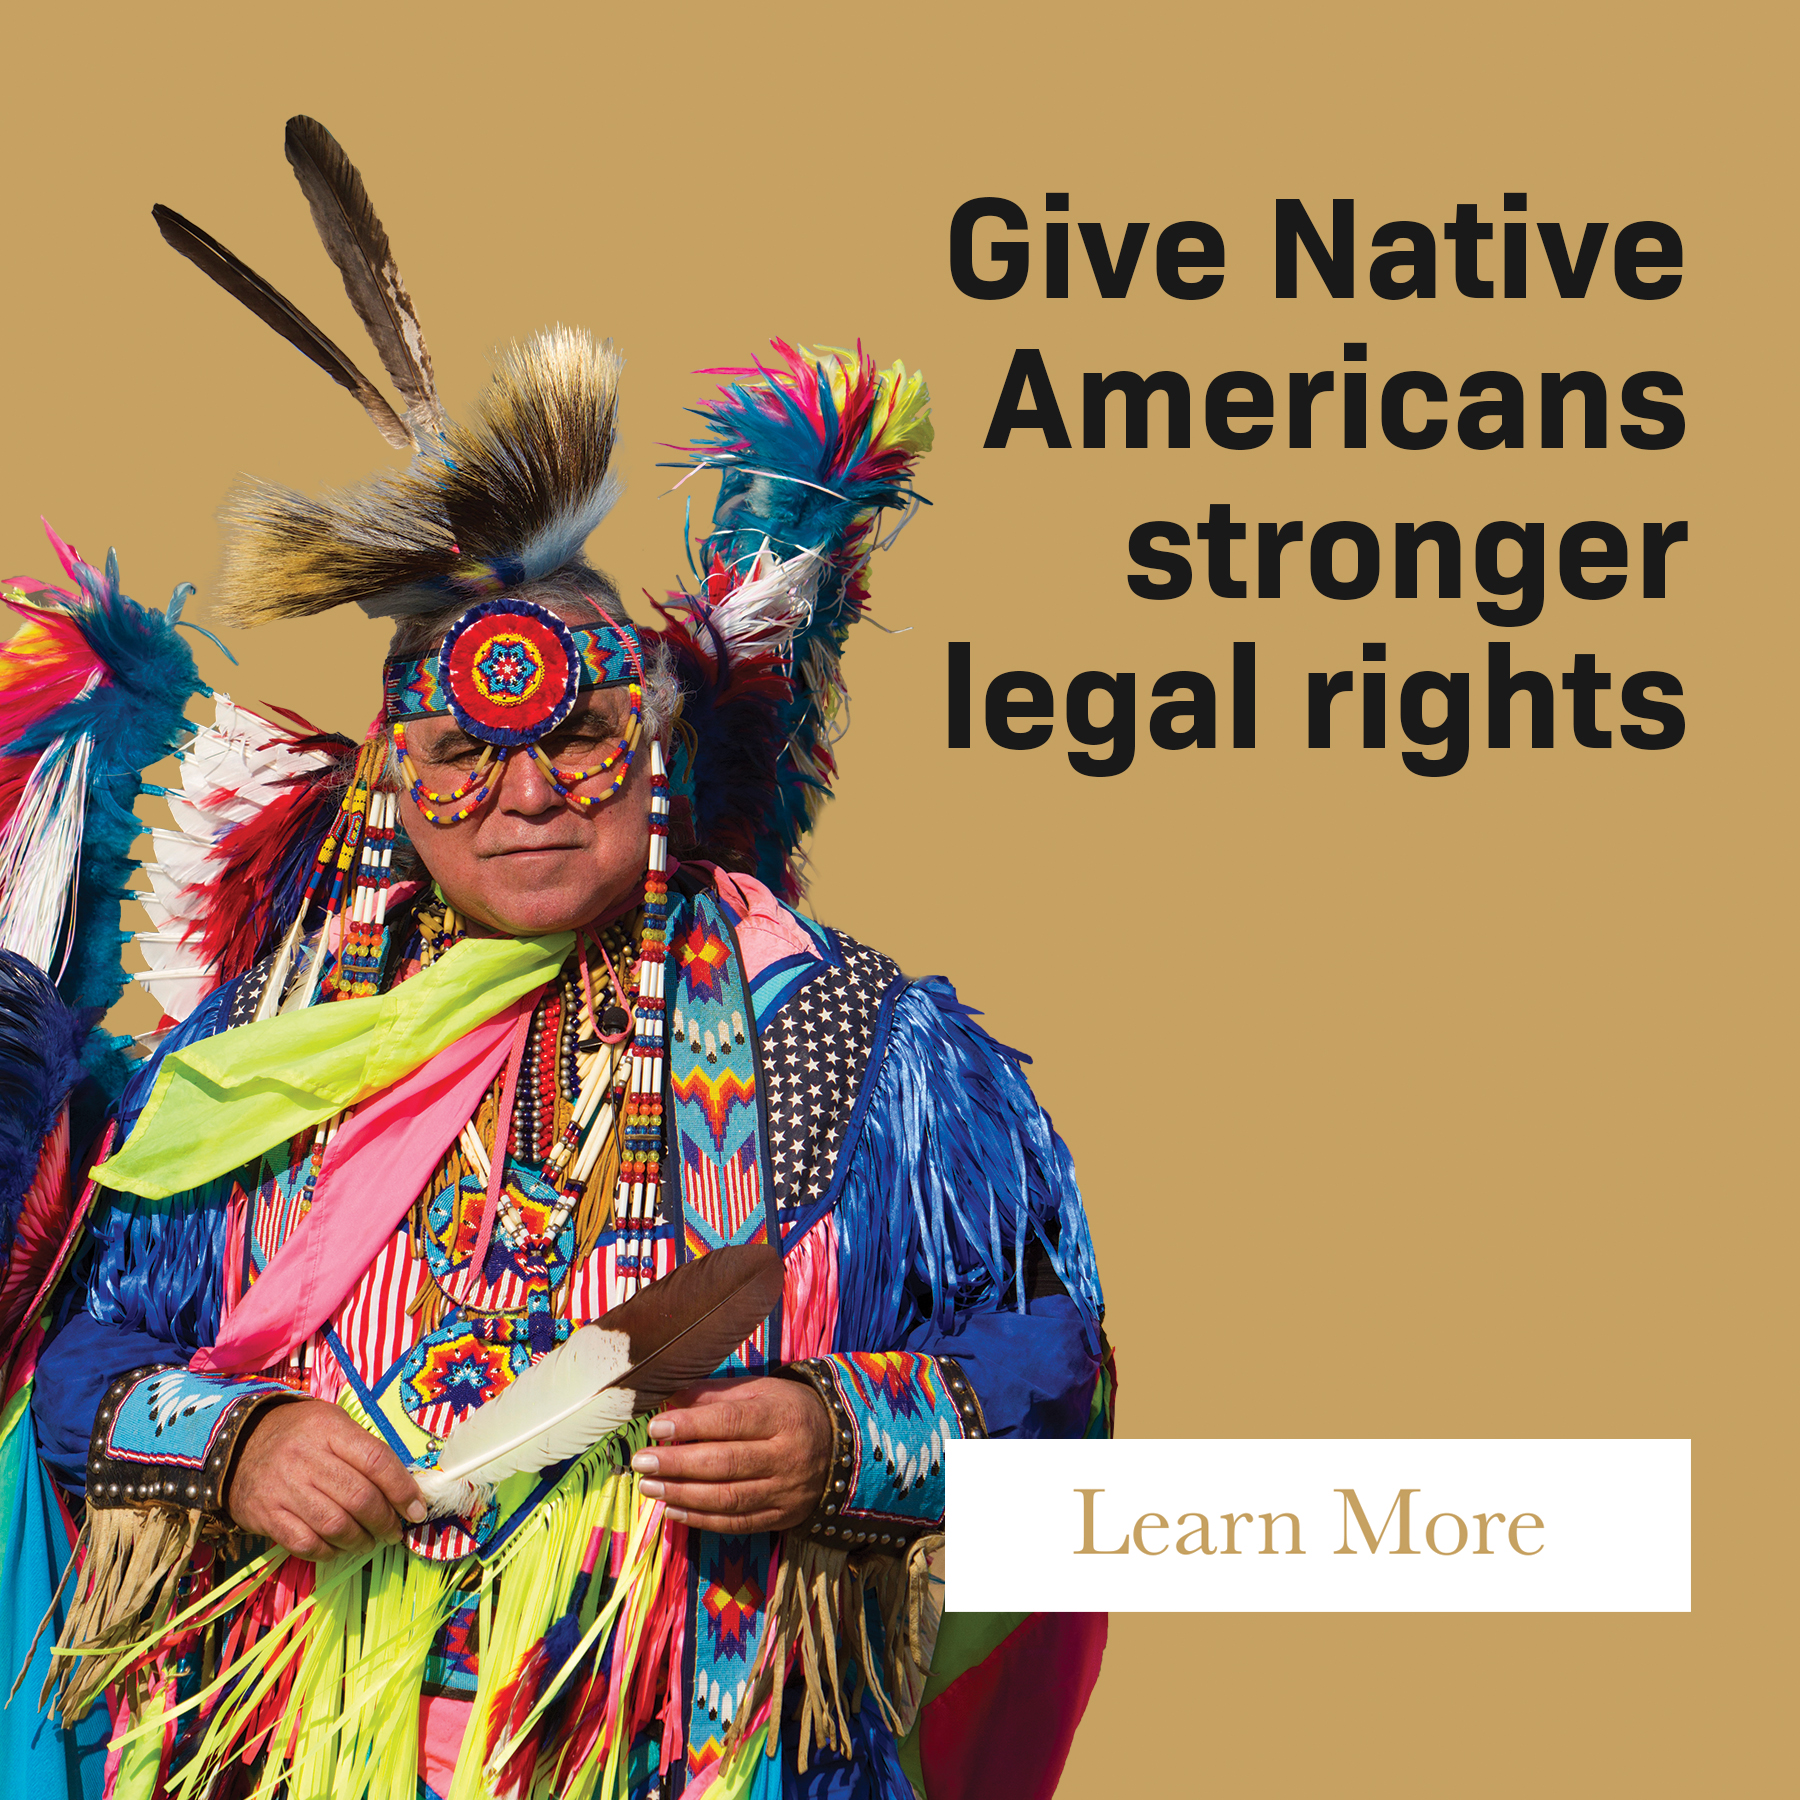 Give Native Americans stronger legal rights